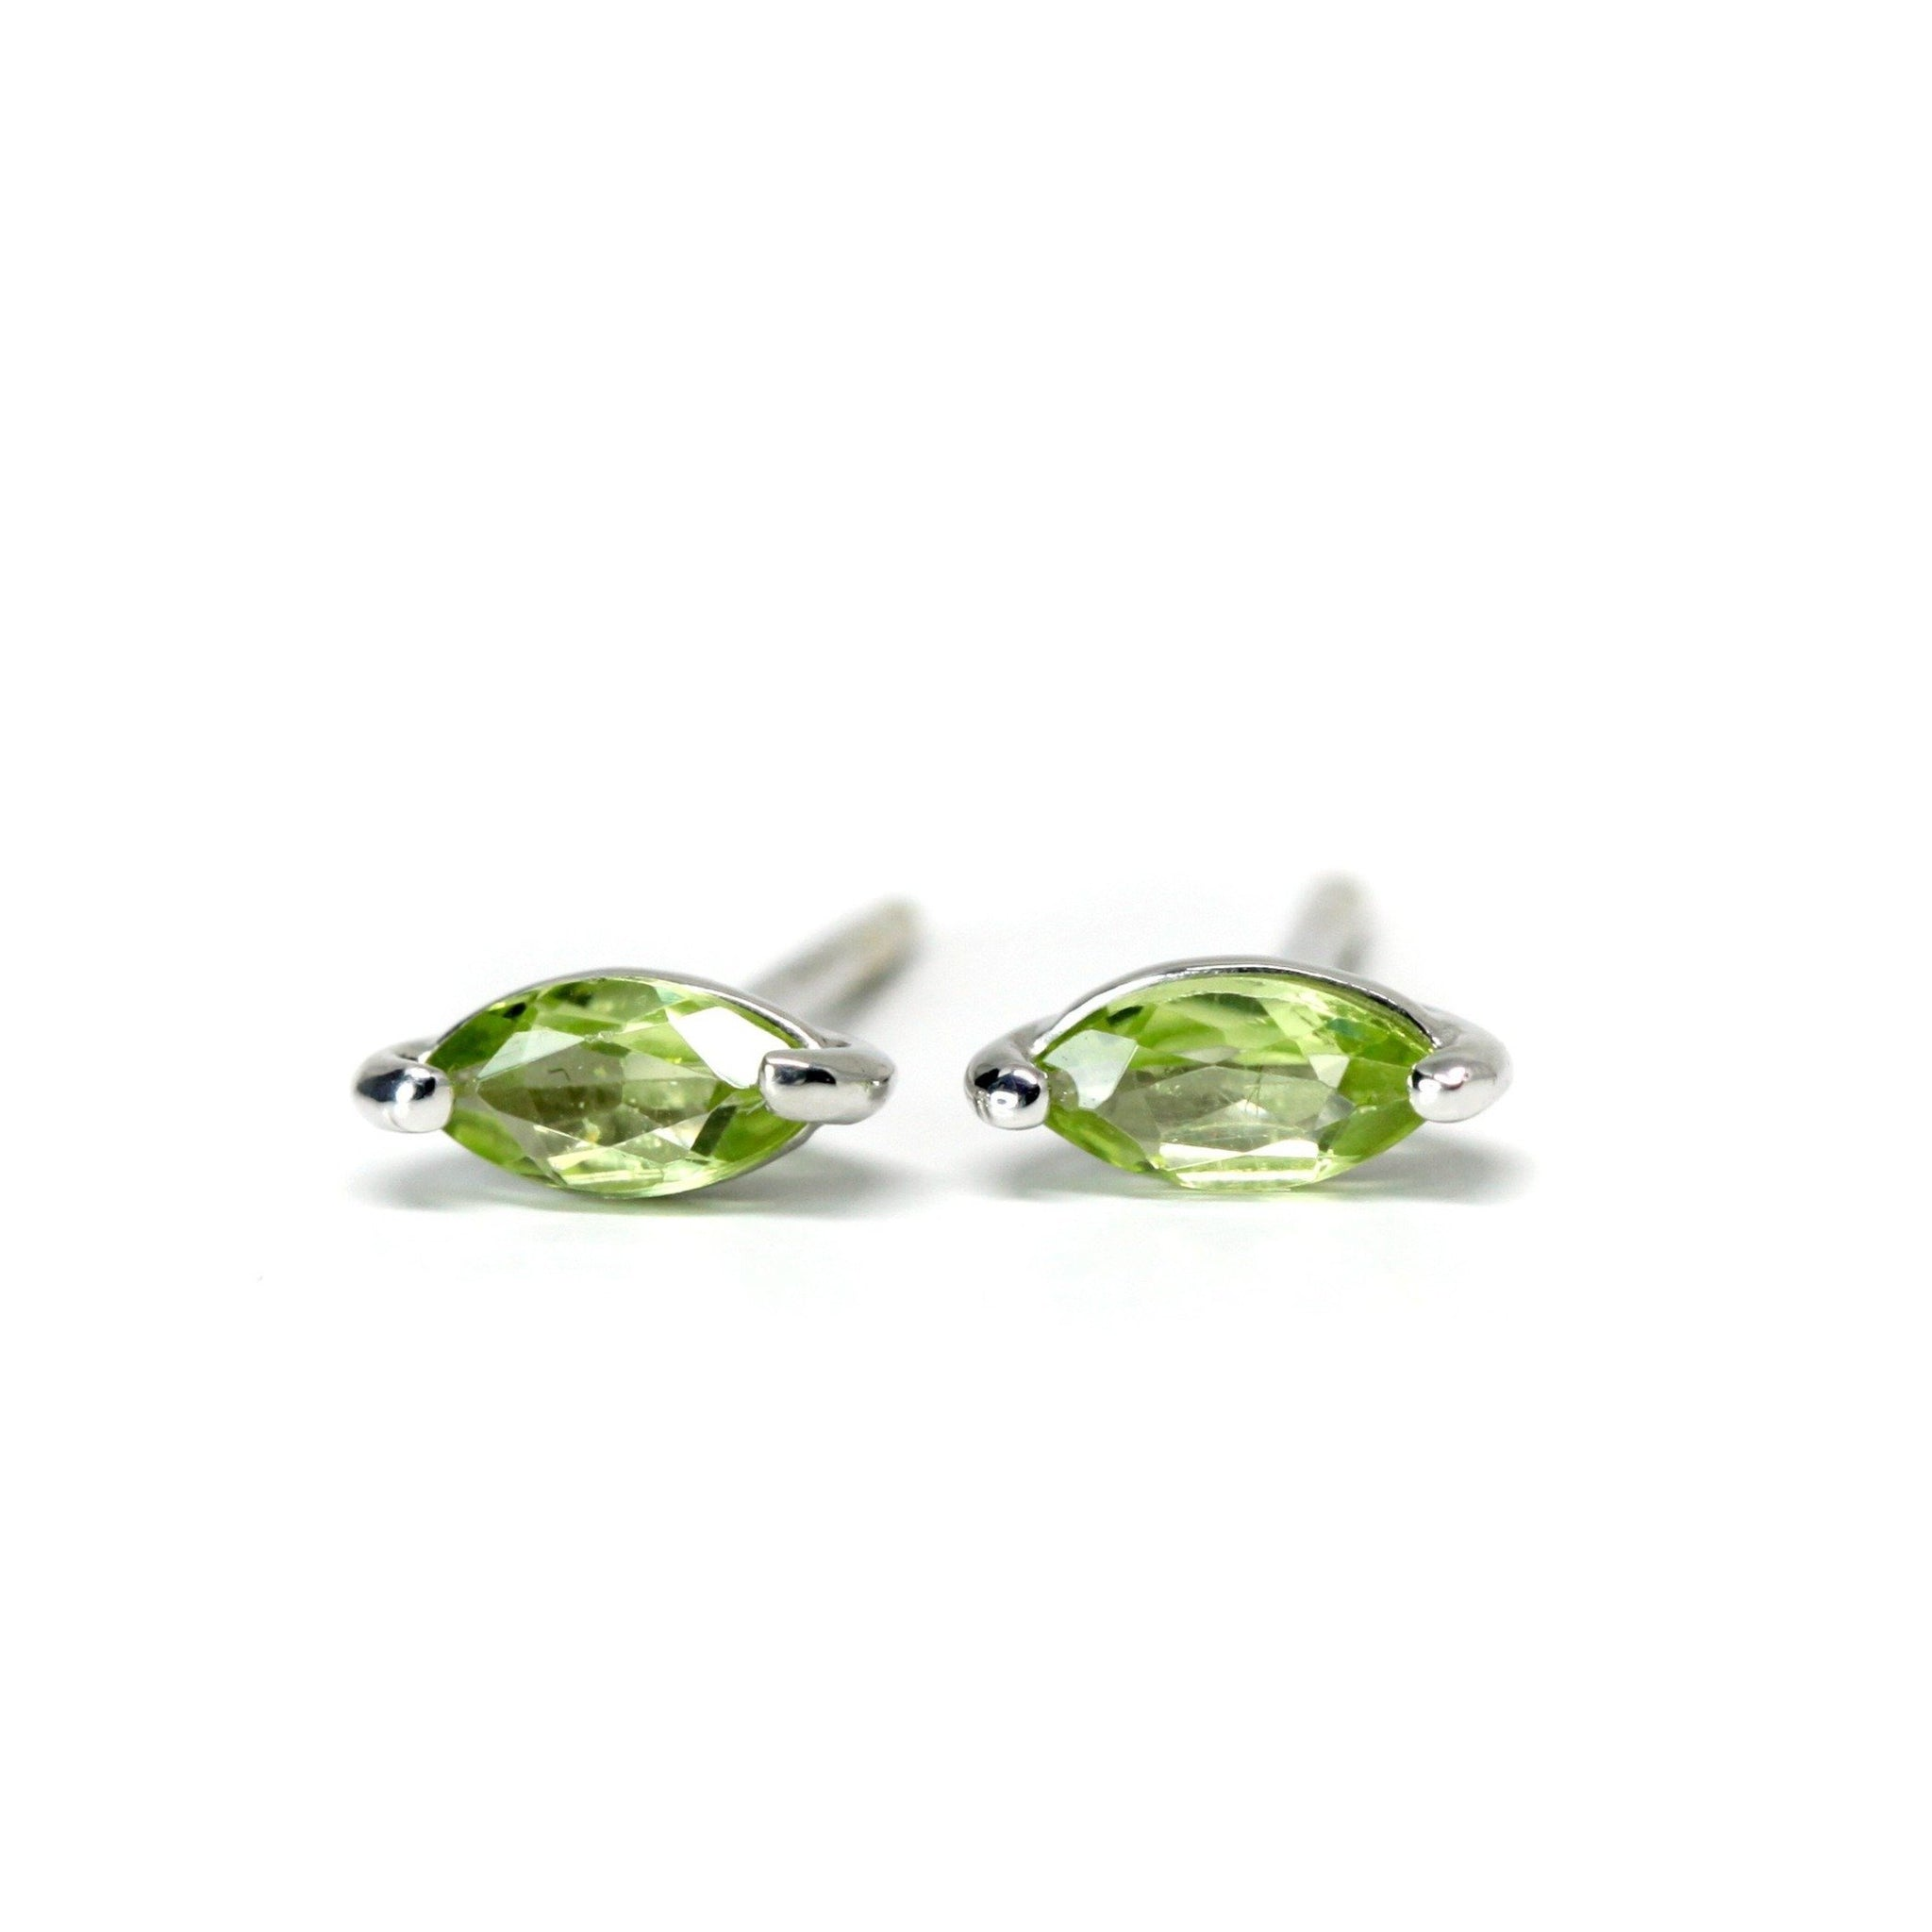 Bena Jewelry peridot marquise shape stud earrings green natural gemstone for Ruby Mardi Montreal Made in Canada